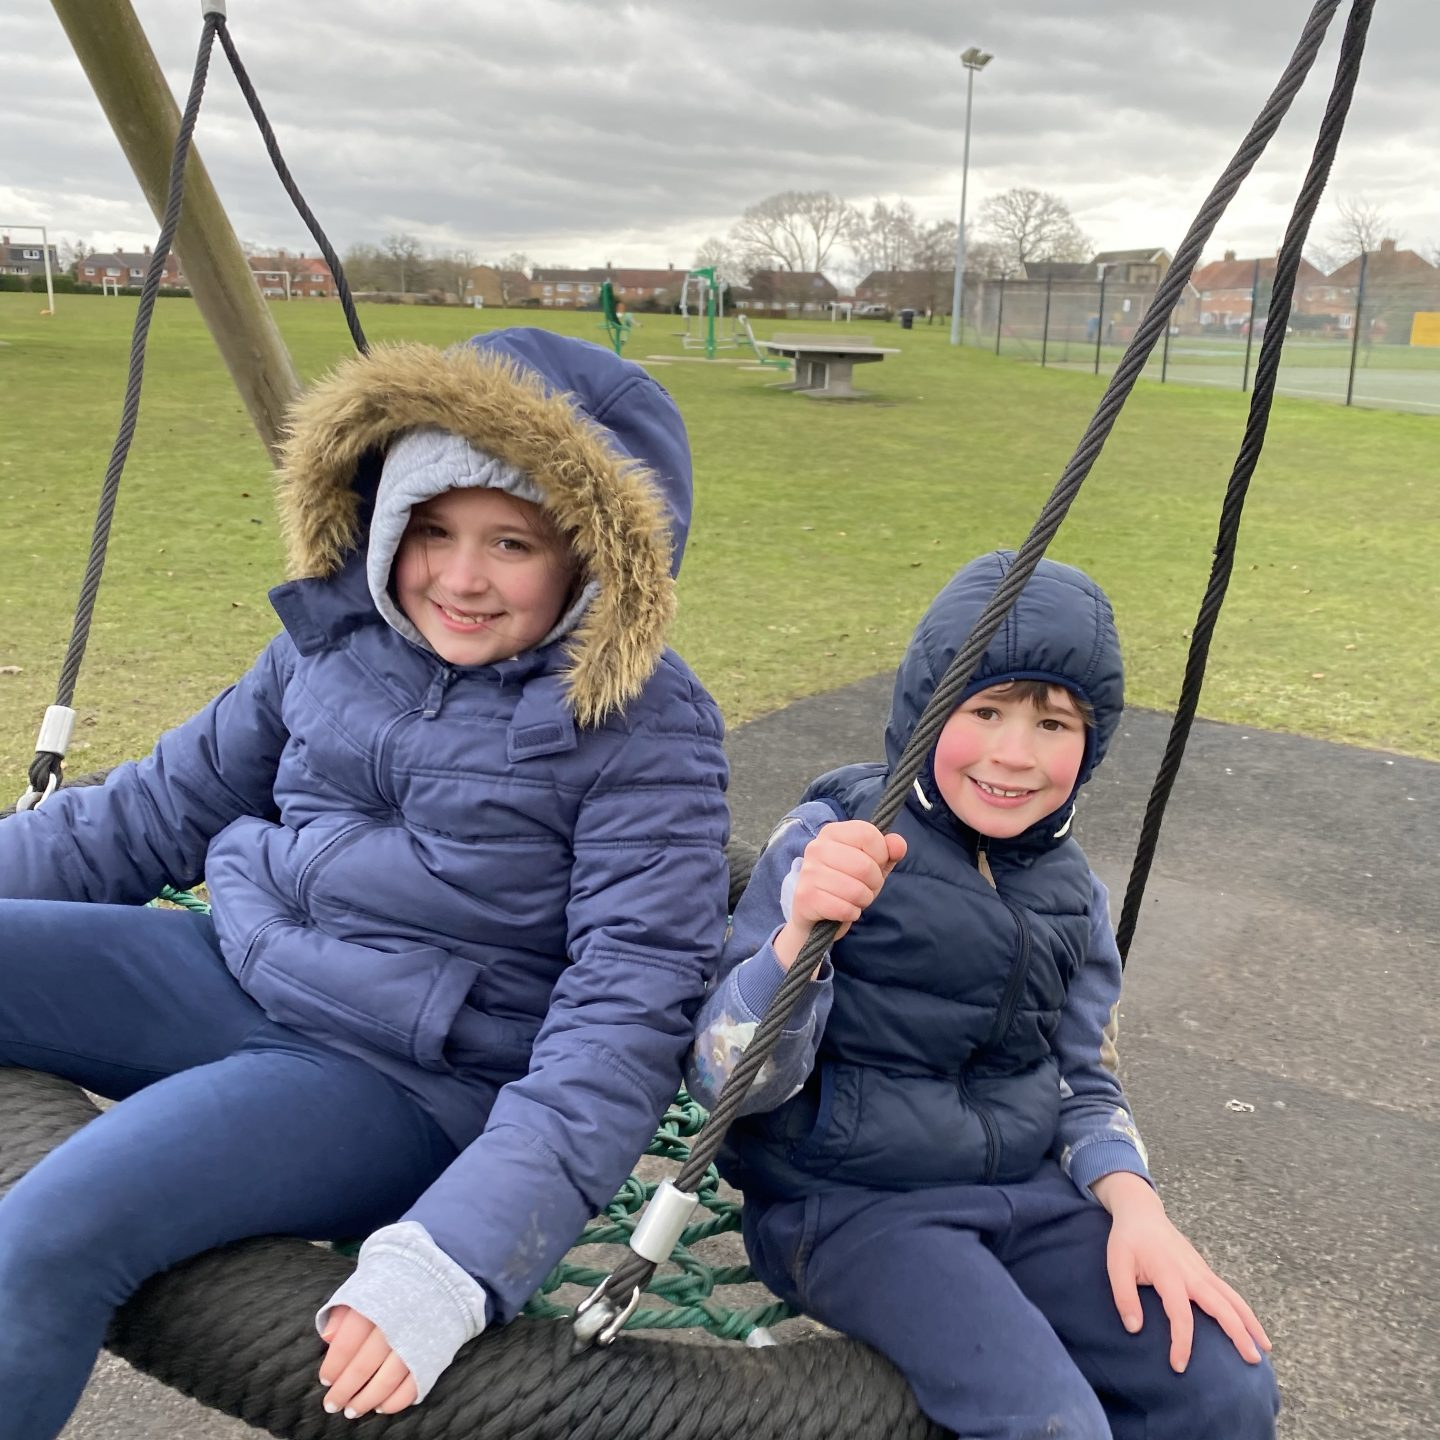 Playground trip with 2  children on a flying saucer swing